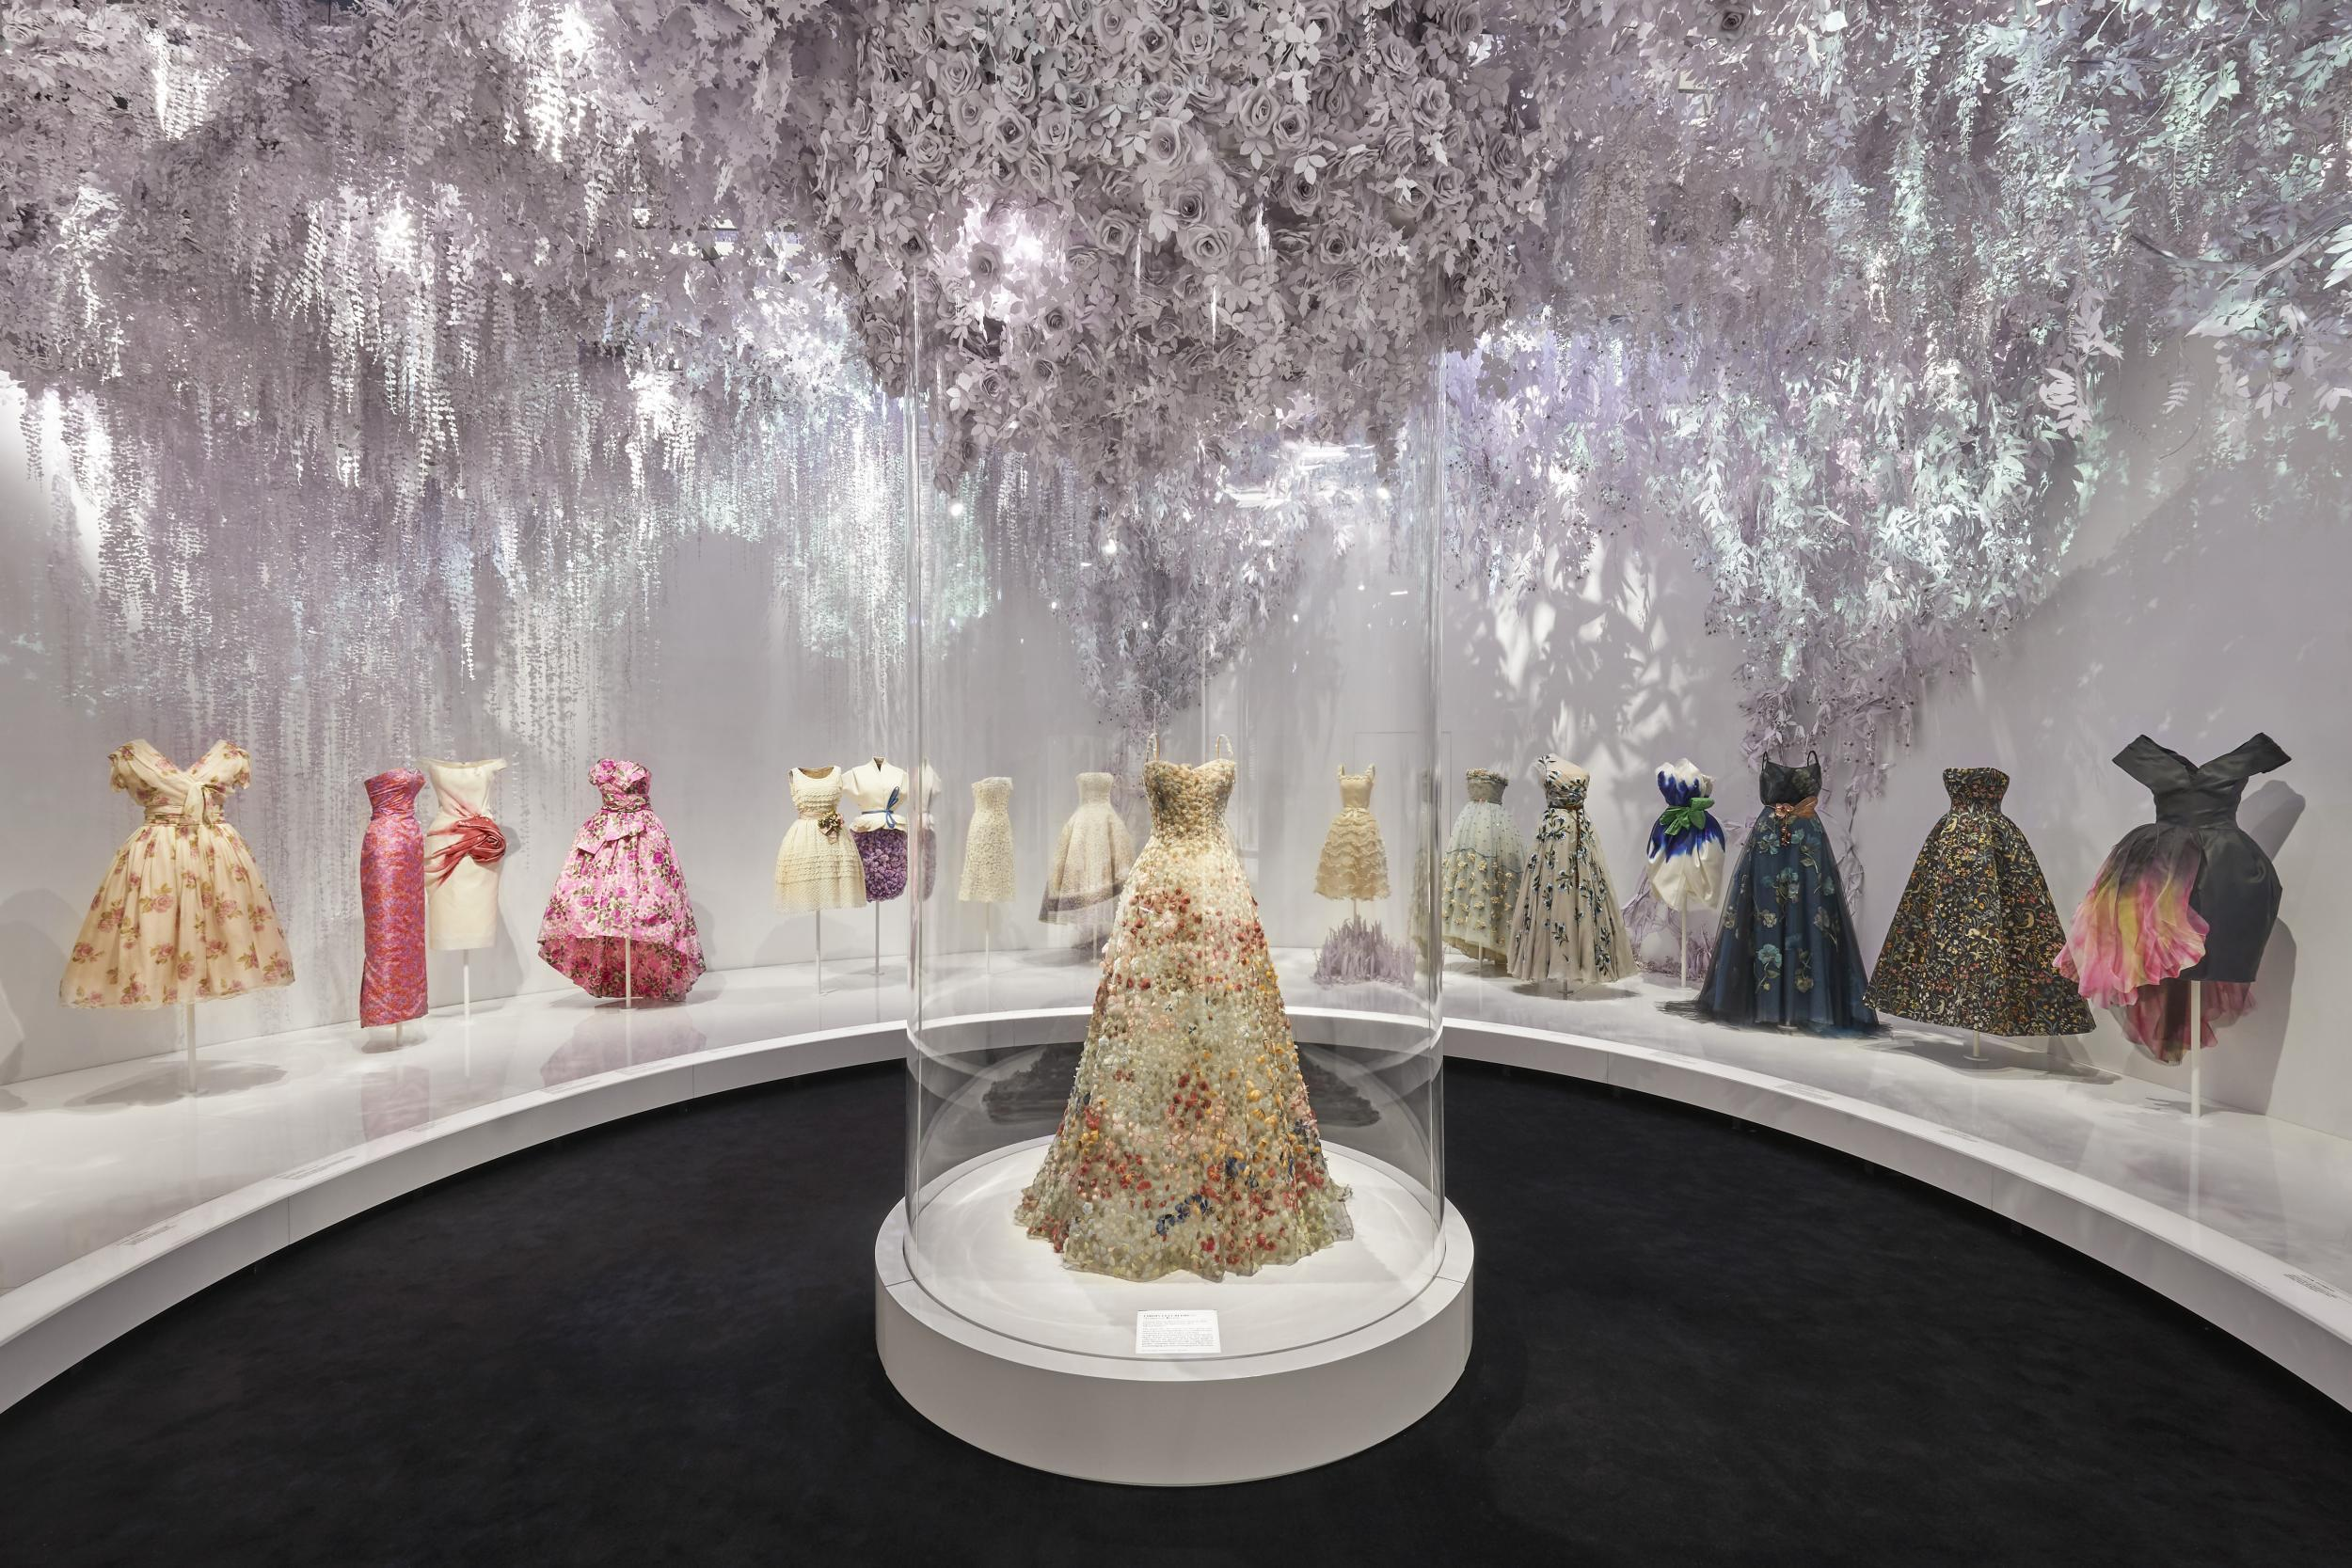 Dior at the V&A review: Breathtaking retrospective that at times does not tell the whole story | The Independent